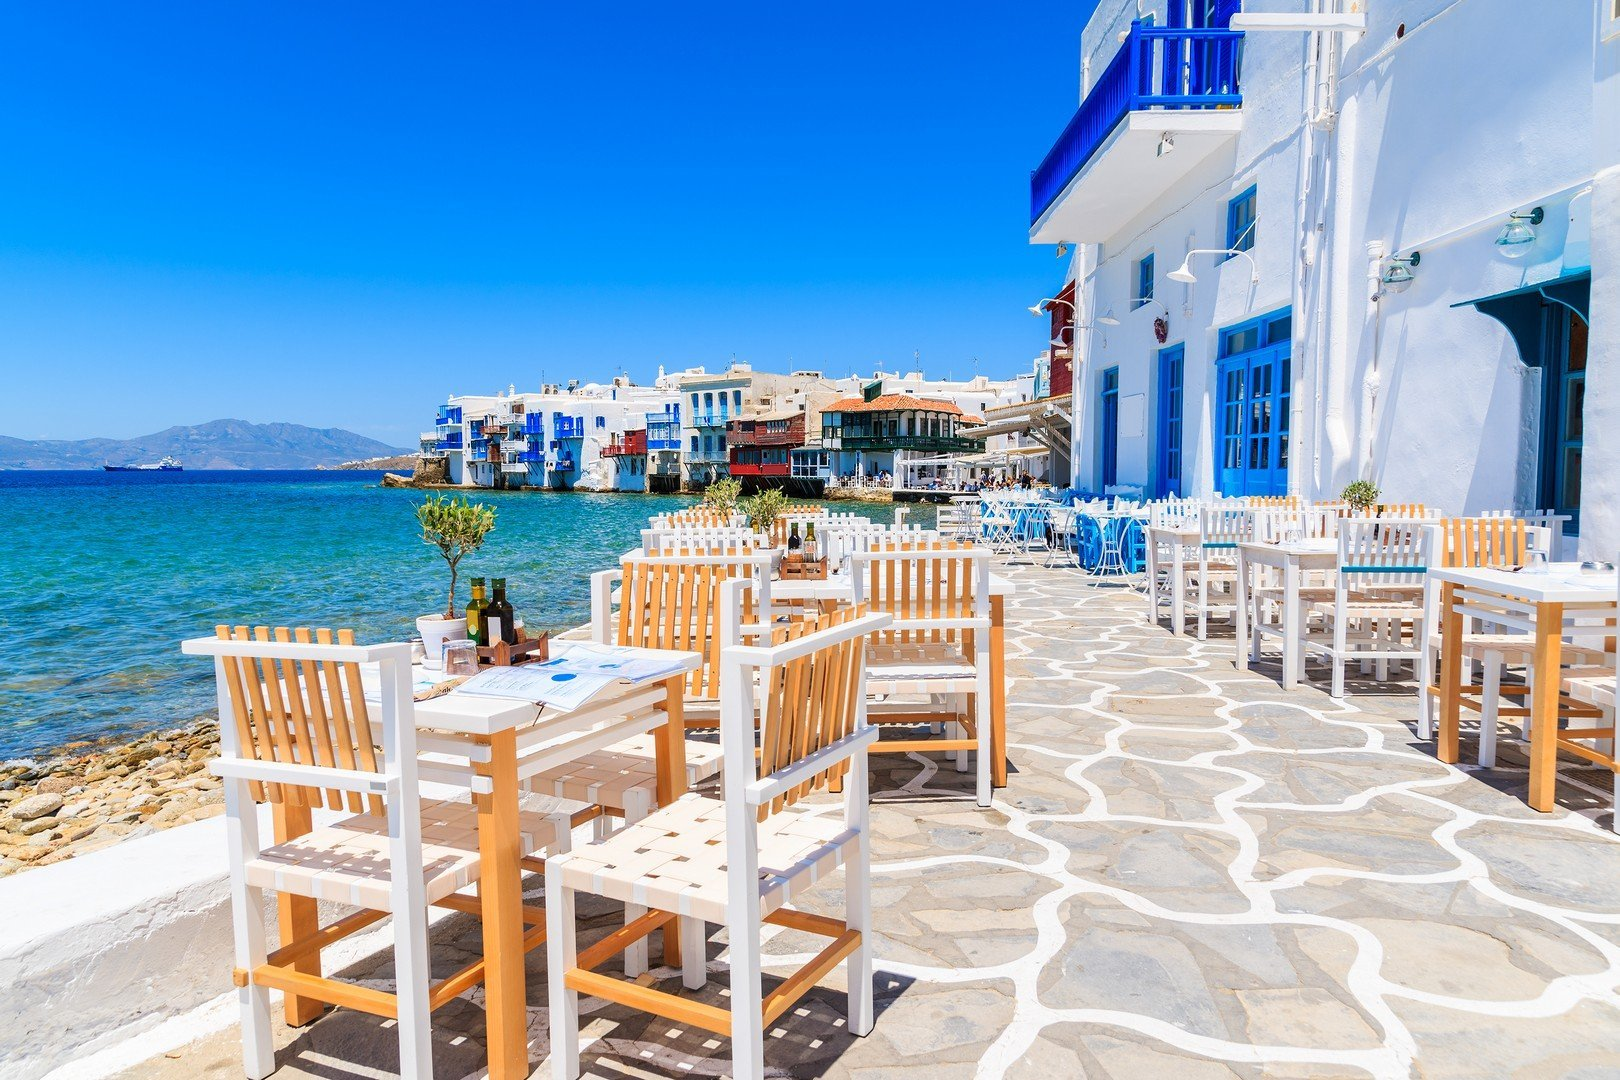 Chairs with tables in typical Greek tavern in Little Venice part of Mykonos town, Mykonos island, Greece - Imagen shutterstock_428874820